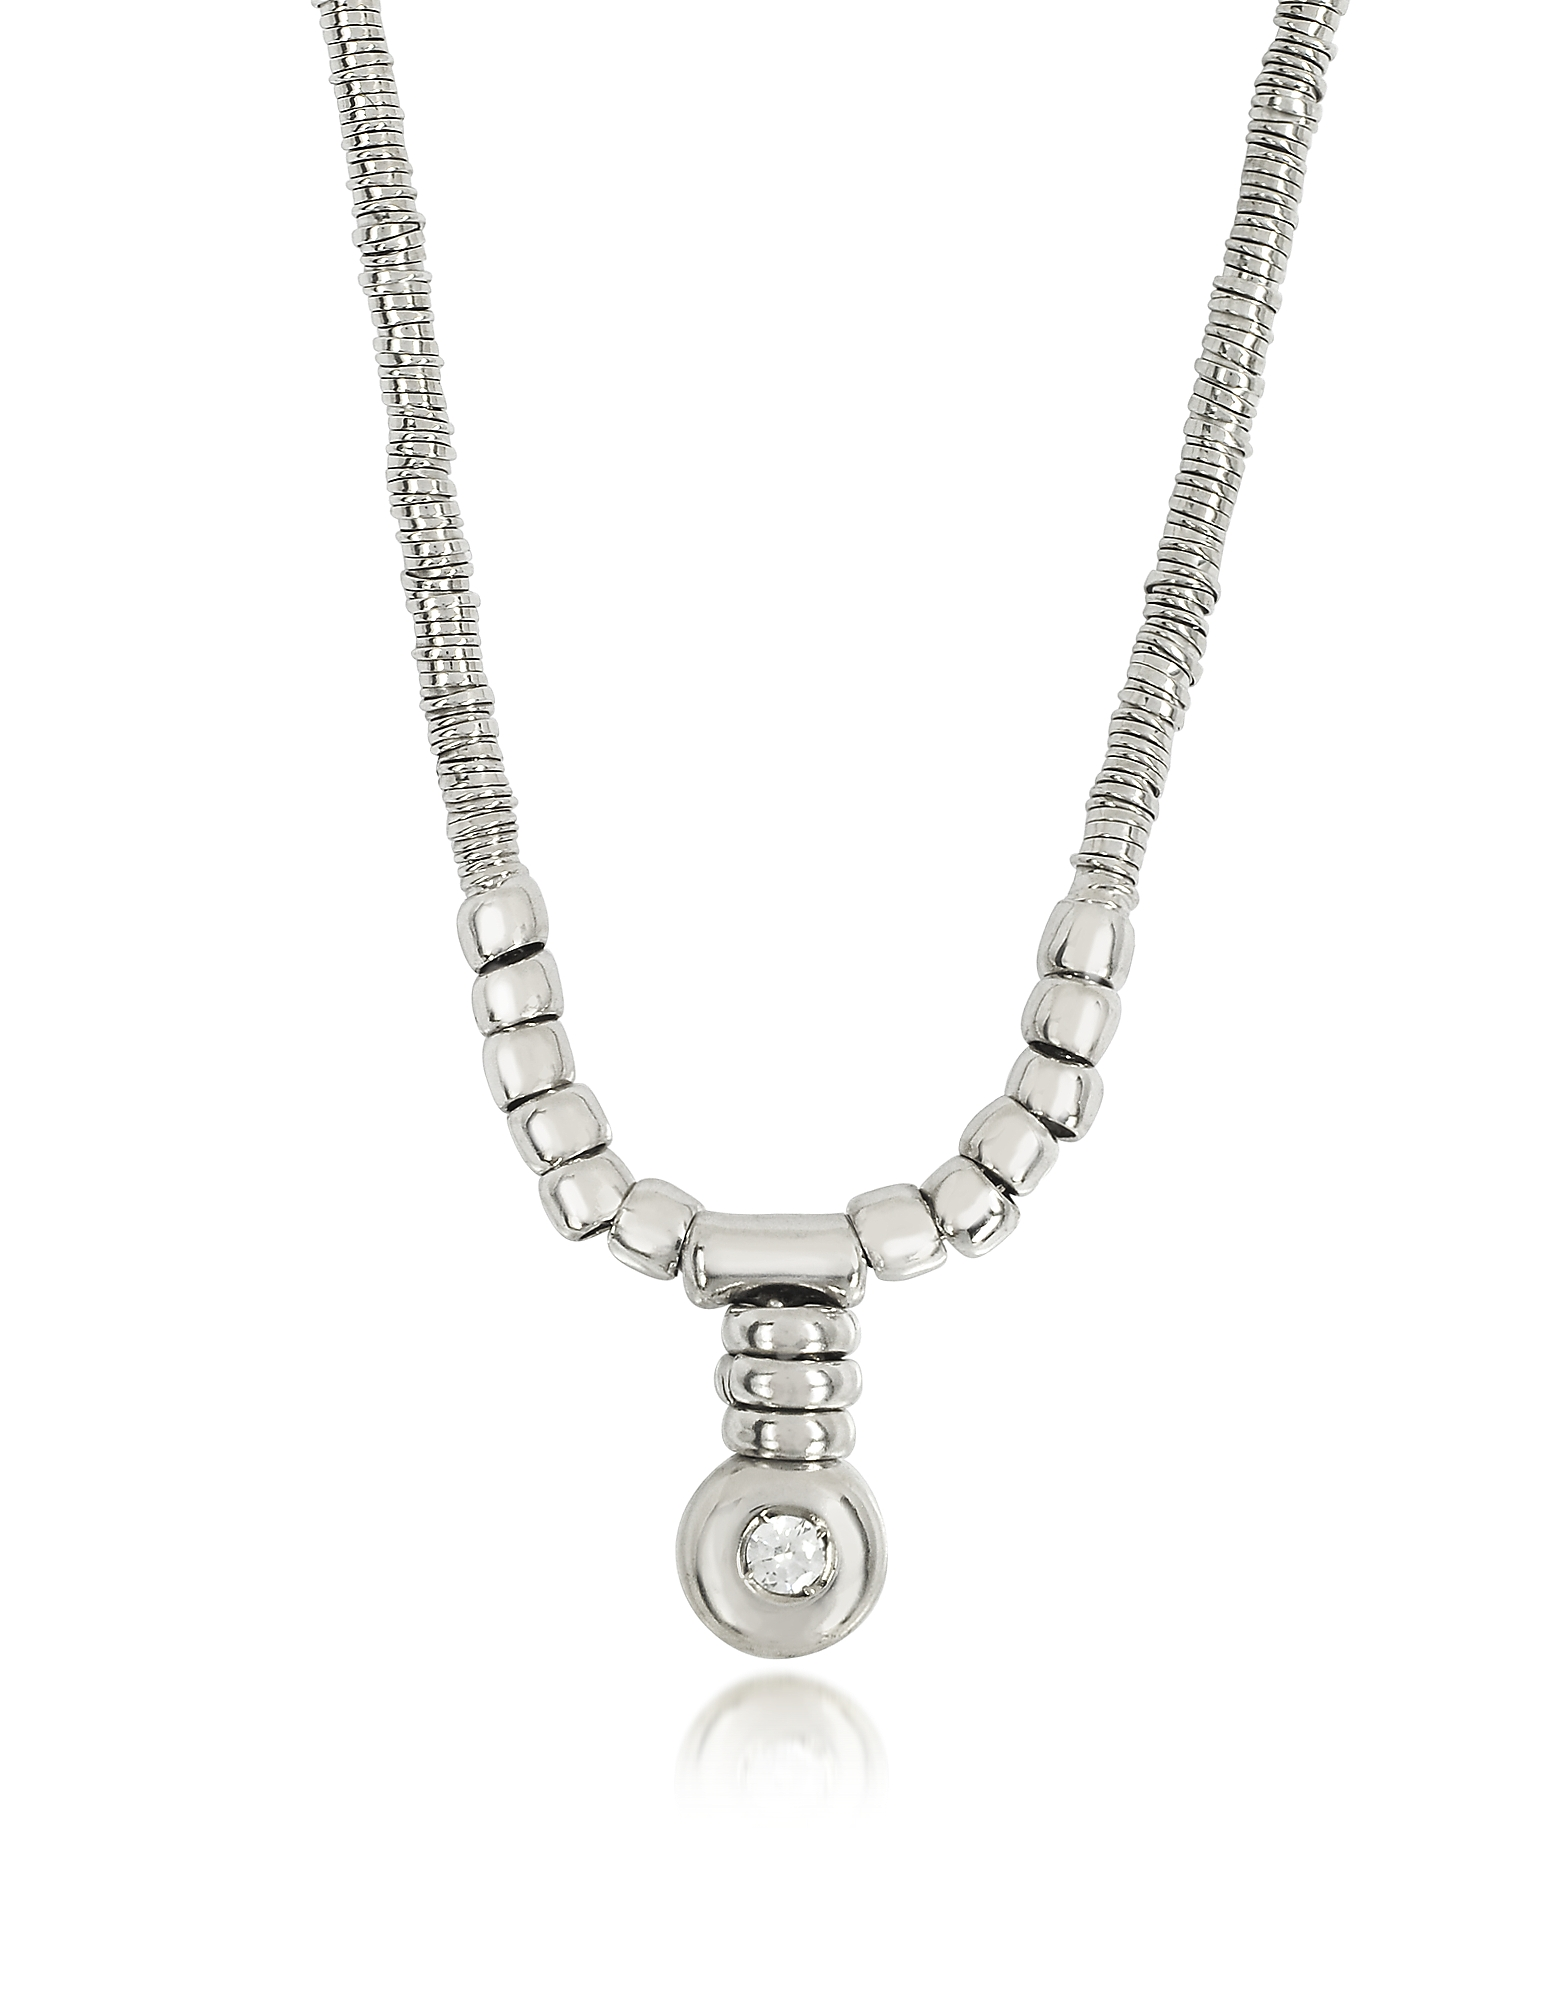 Orlando Orlandini Necklaces, White Gold Chain Snake Necklace w/Diamond